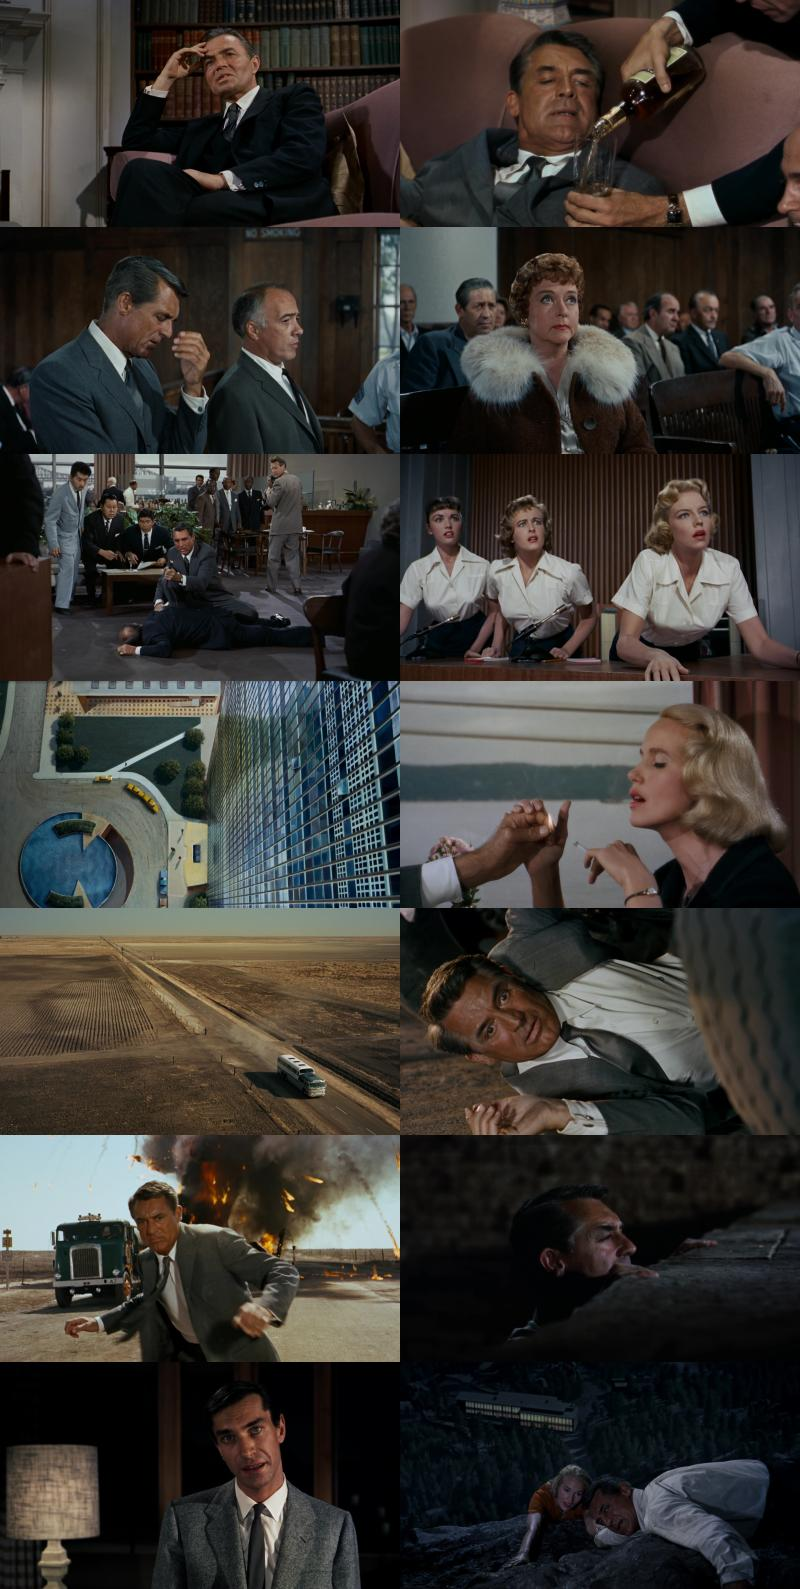 http://watershade.net/public/north-by-northwest.jpg